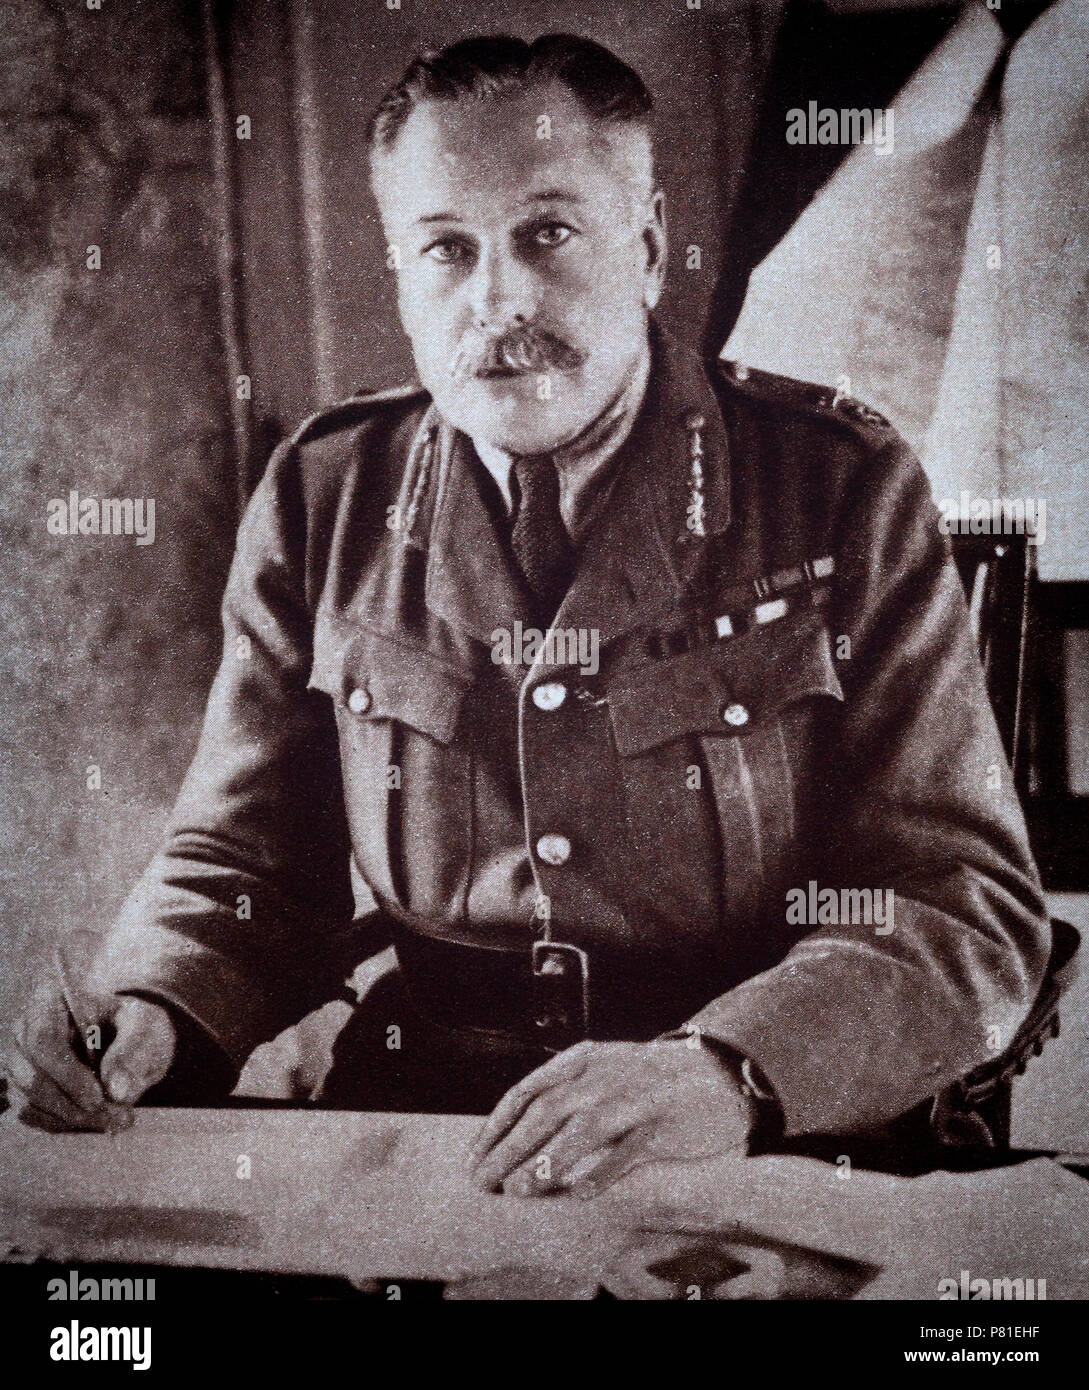 1918 portrait of Sir Douglas Haig, Commander the British Expeditionary Force (BEF) on the Western Front from late 1915 until the end of the war. He was commander during the Battle of the Somme, the Third Battle of Ypres, the German Spring Offensive, and the Hundred Days Offensive. - Stock Image